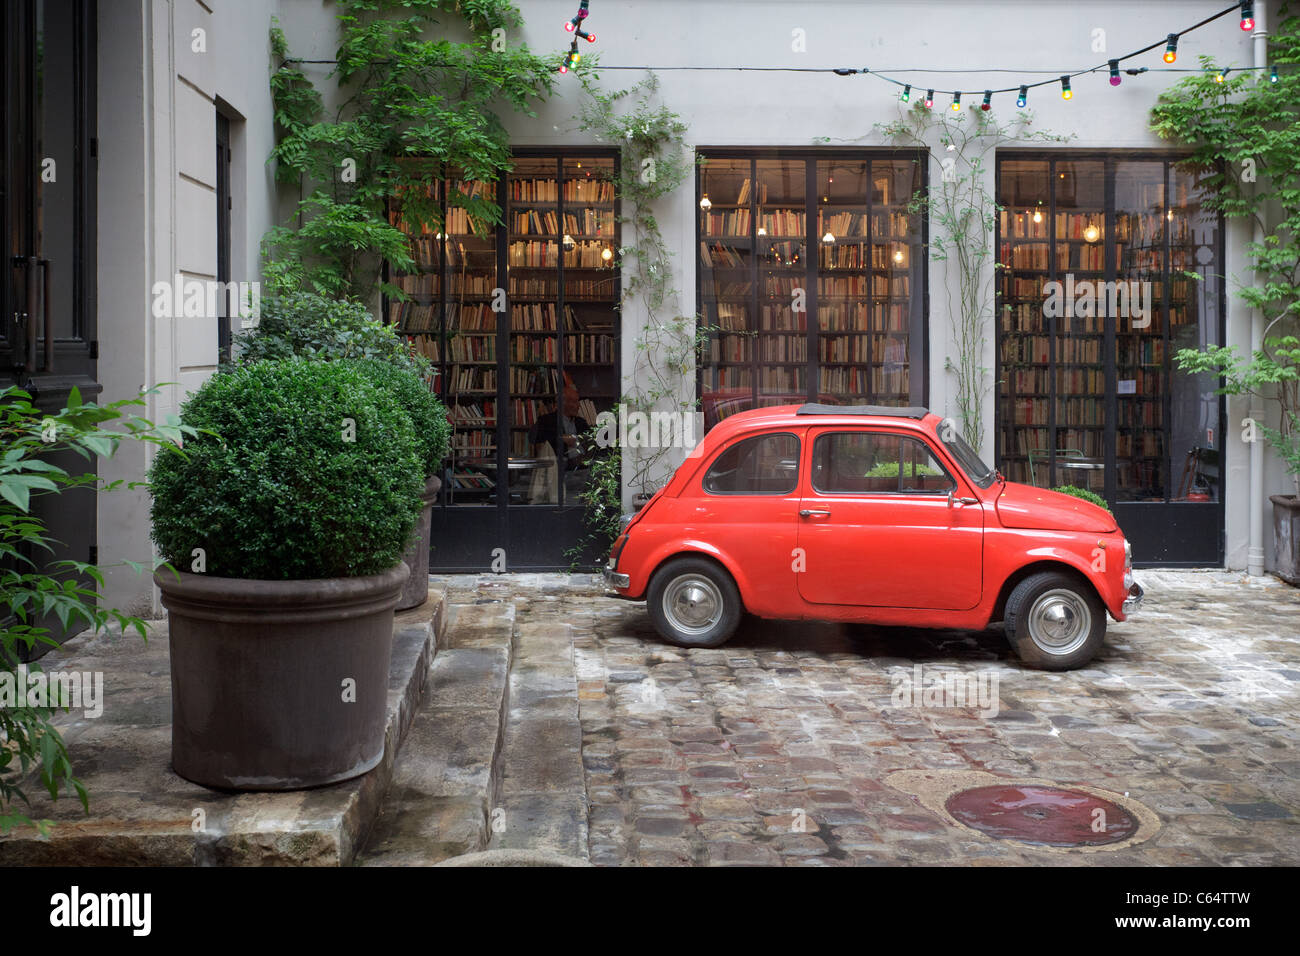 Red Fiat 500 car in courtyard outside Paris concept store, Merci ...